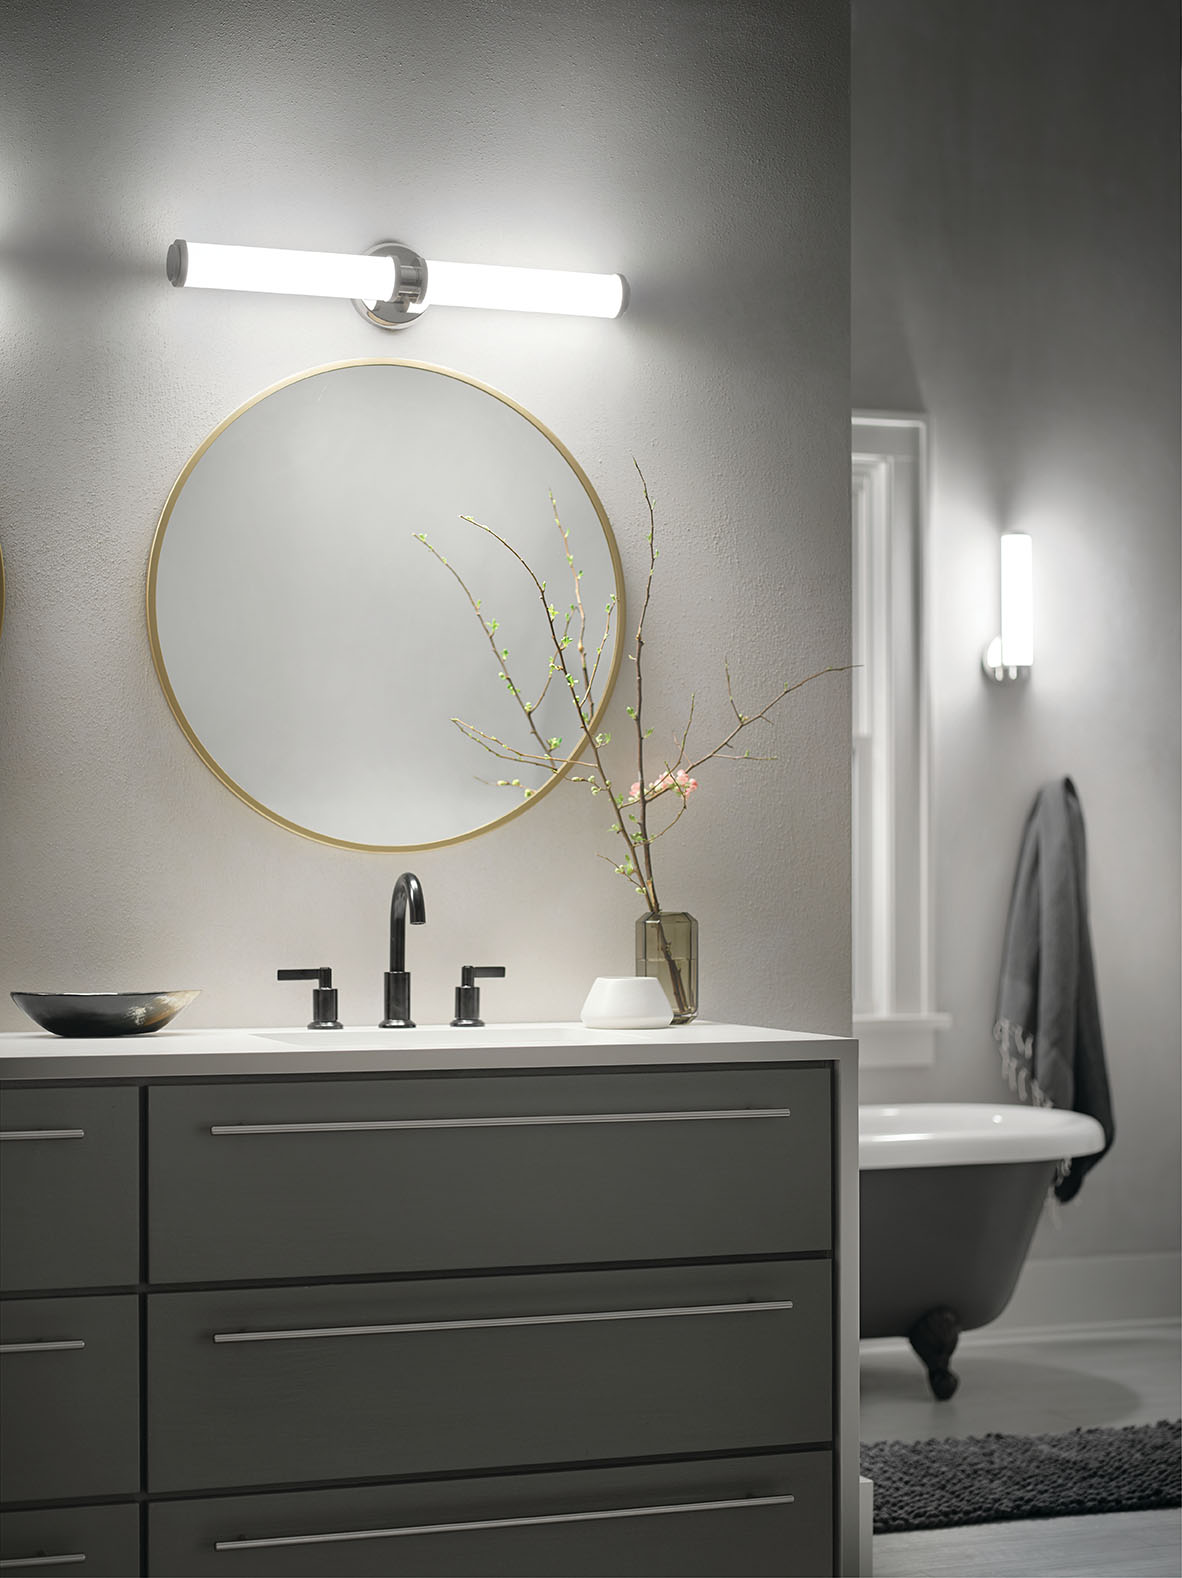 Bathroom_Indeco_45686PNLED_45685PNLED_Night_2.jpg